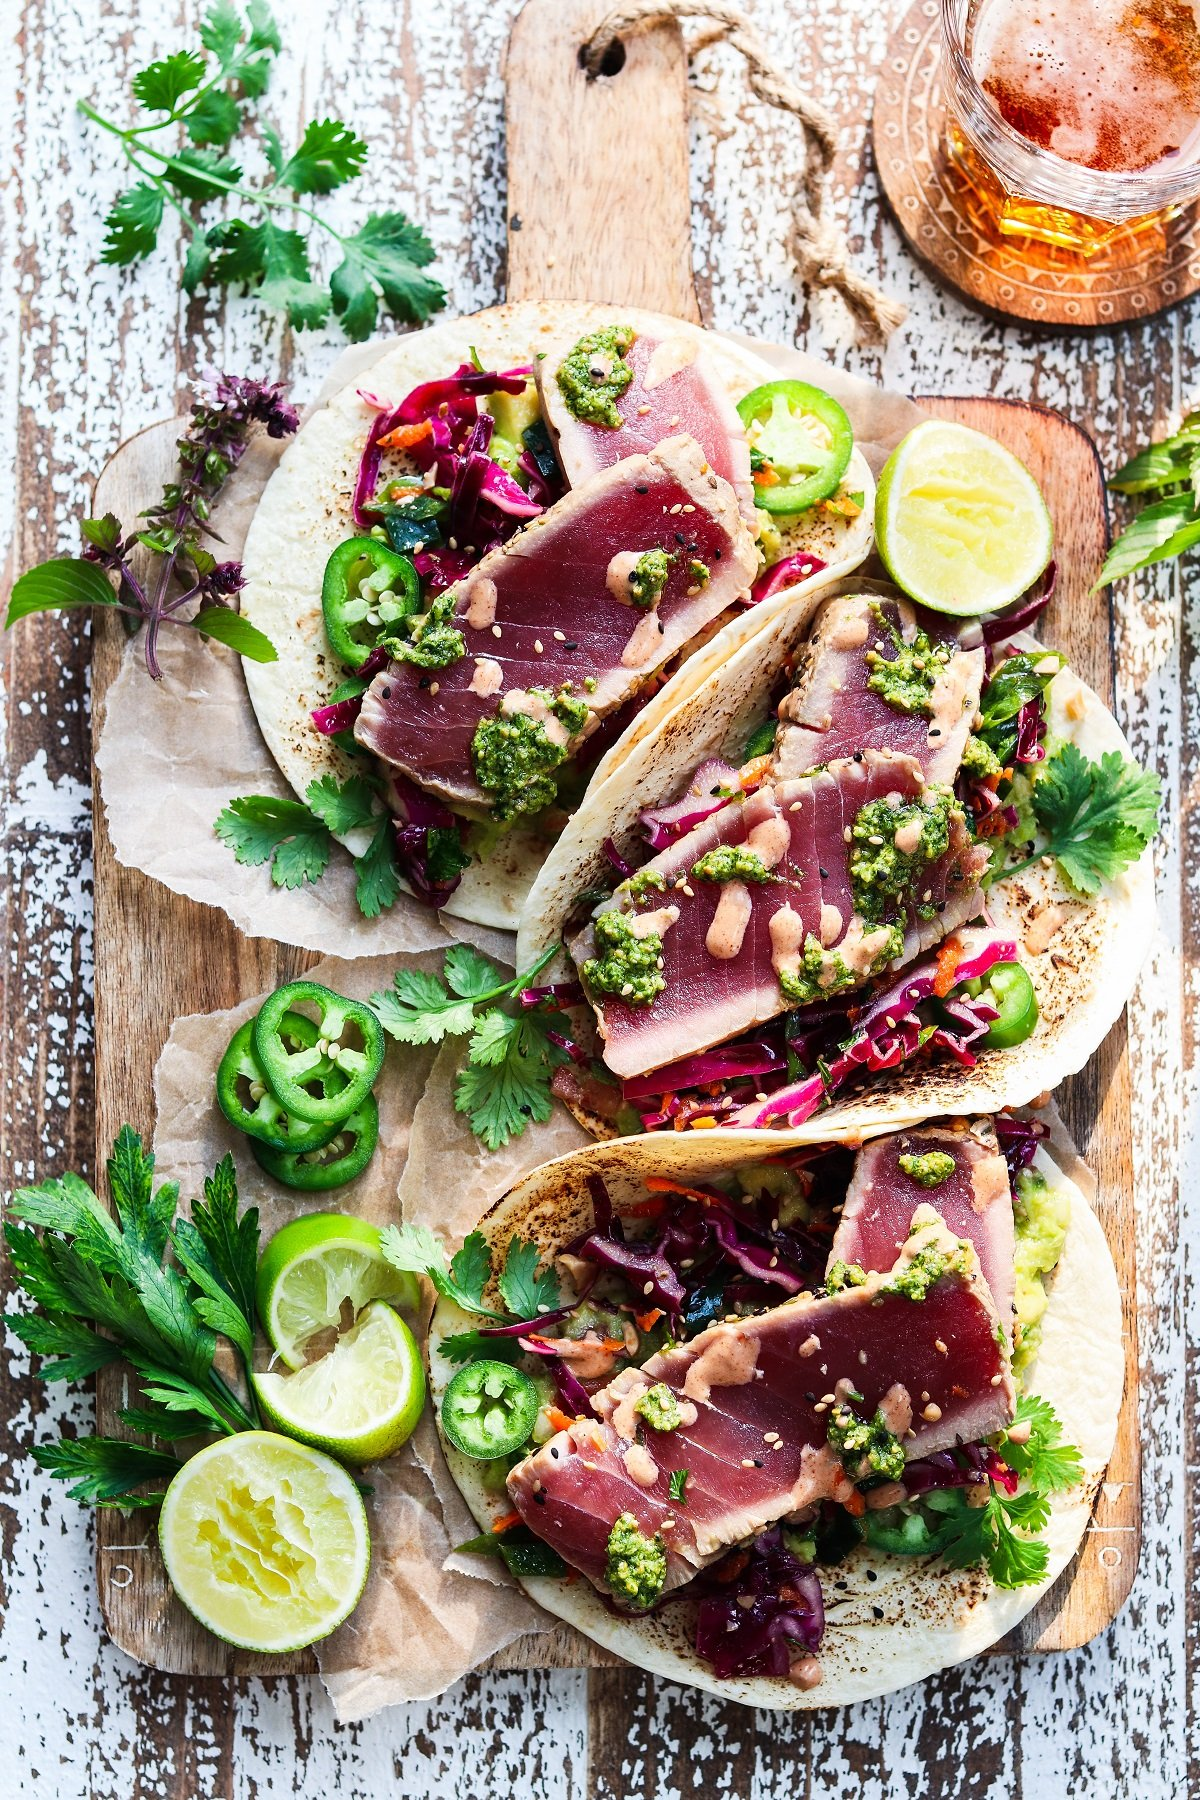 Tuna tacos served with lime wedges, sliced jalapenos and garnished with fresh herbs.